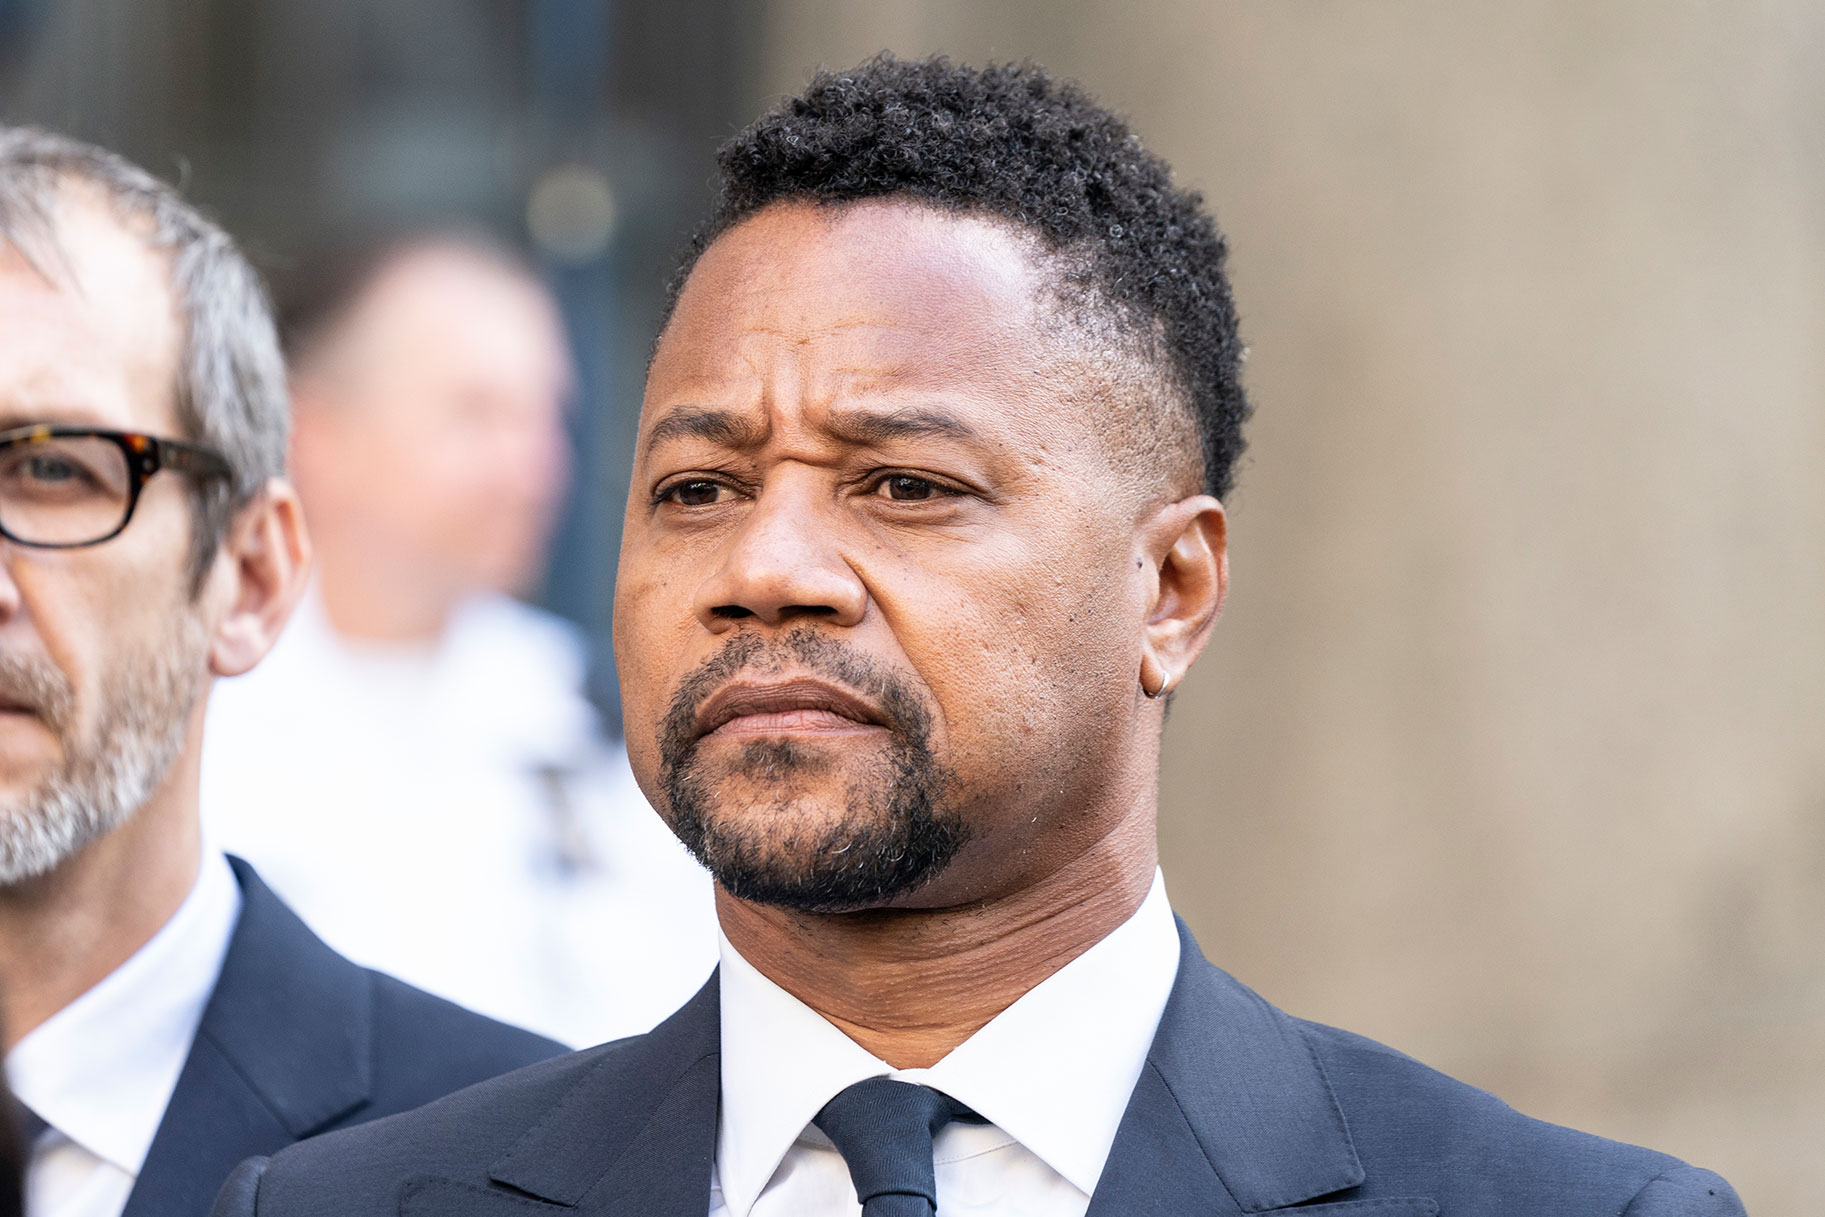 Cuba Gooding Jr. Accused Of Groping, Harassment By Seven More Women, Prosecutors Say